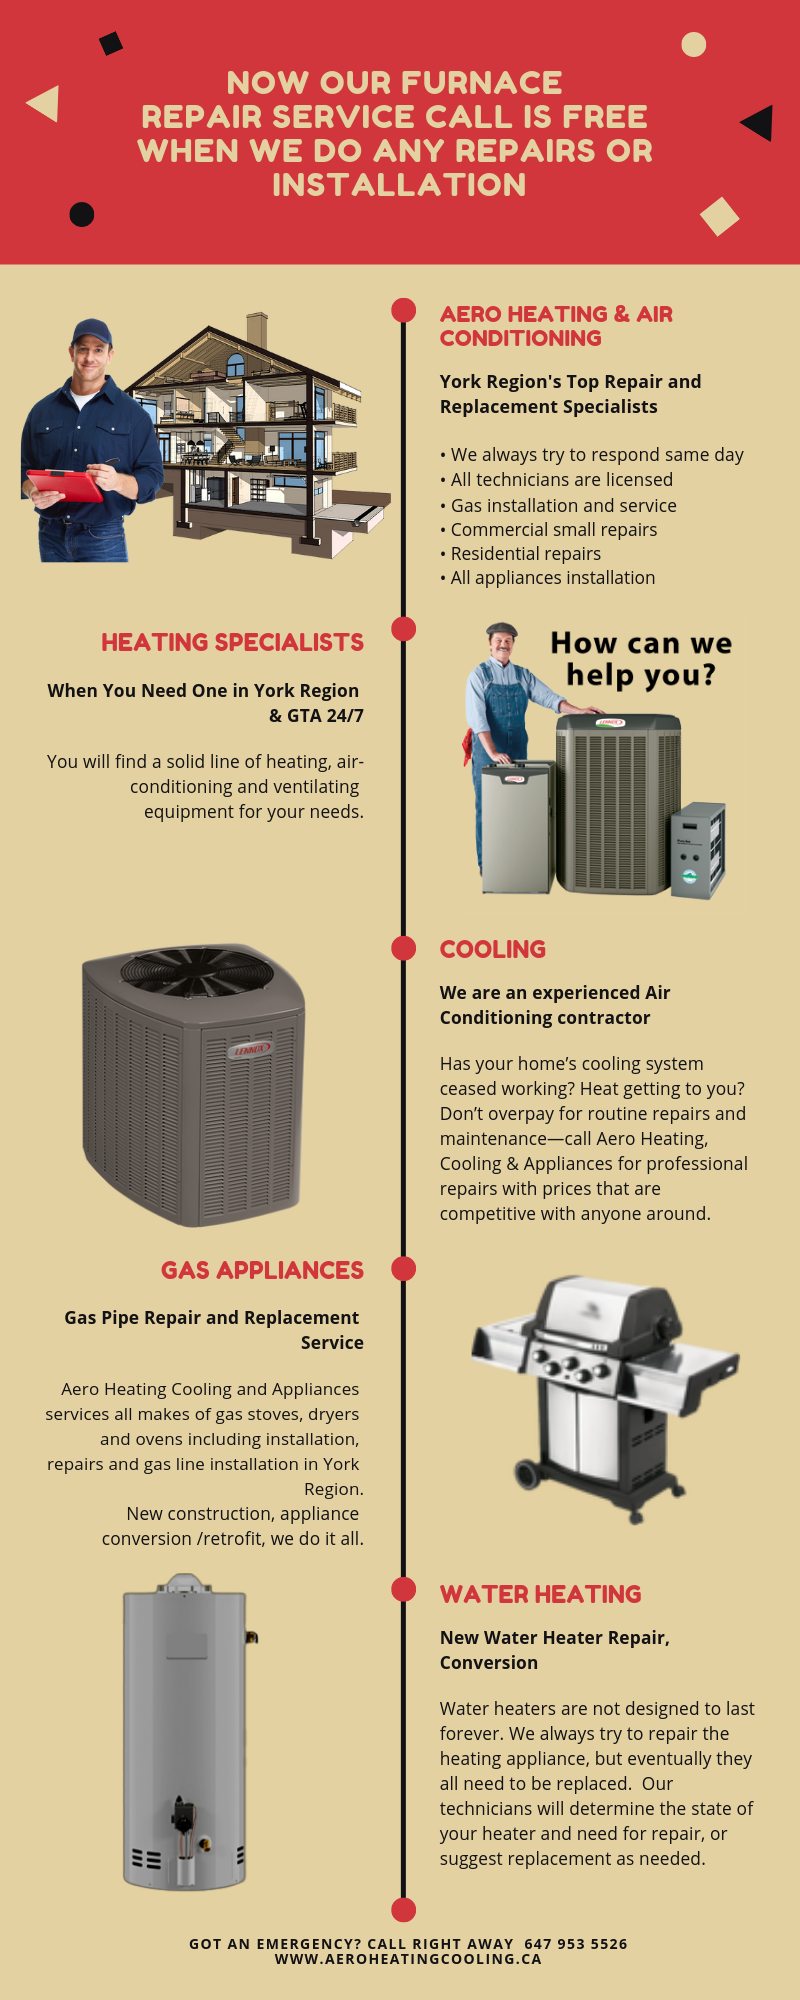 From booking your Furnace Repair or Installation service